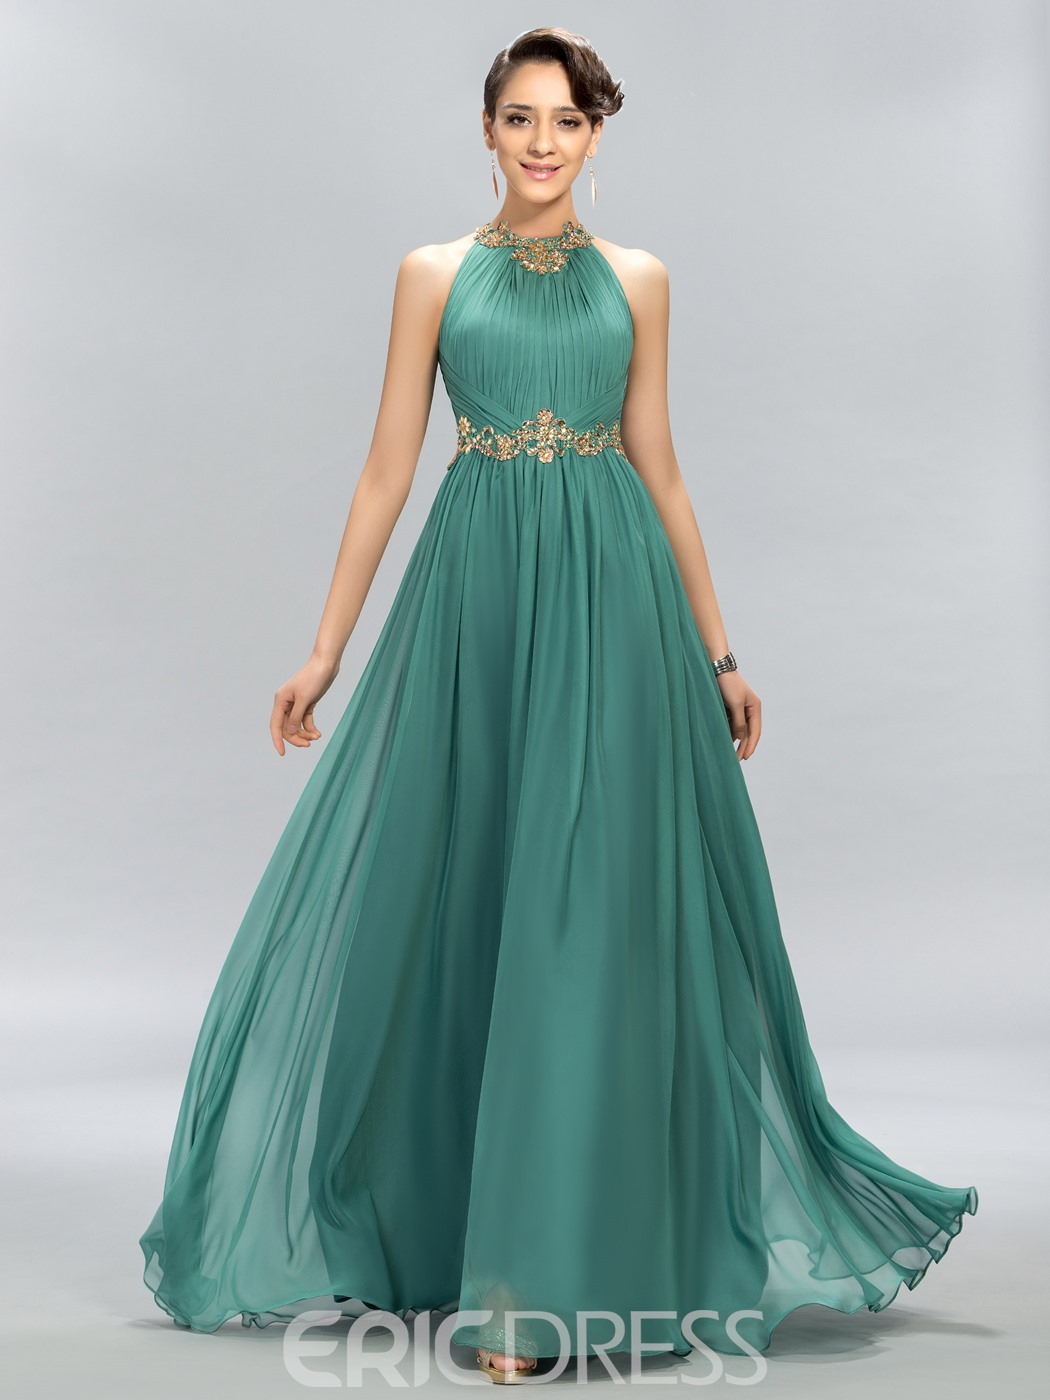 Trendy Prom Dresses 2017 for Girls Online - Ericdress.com